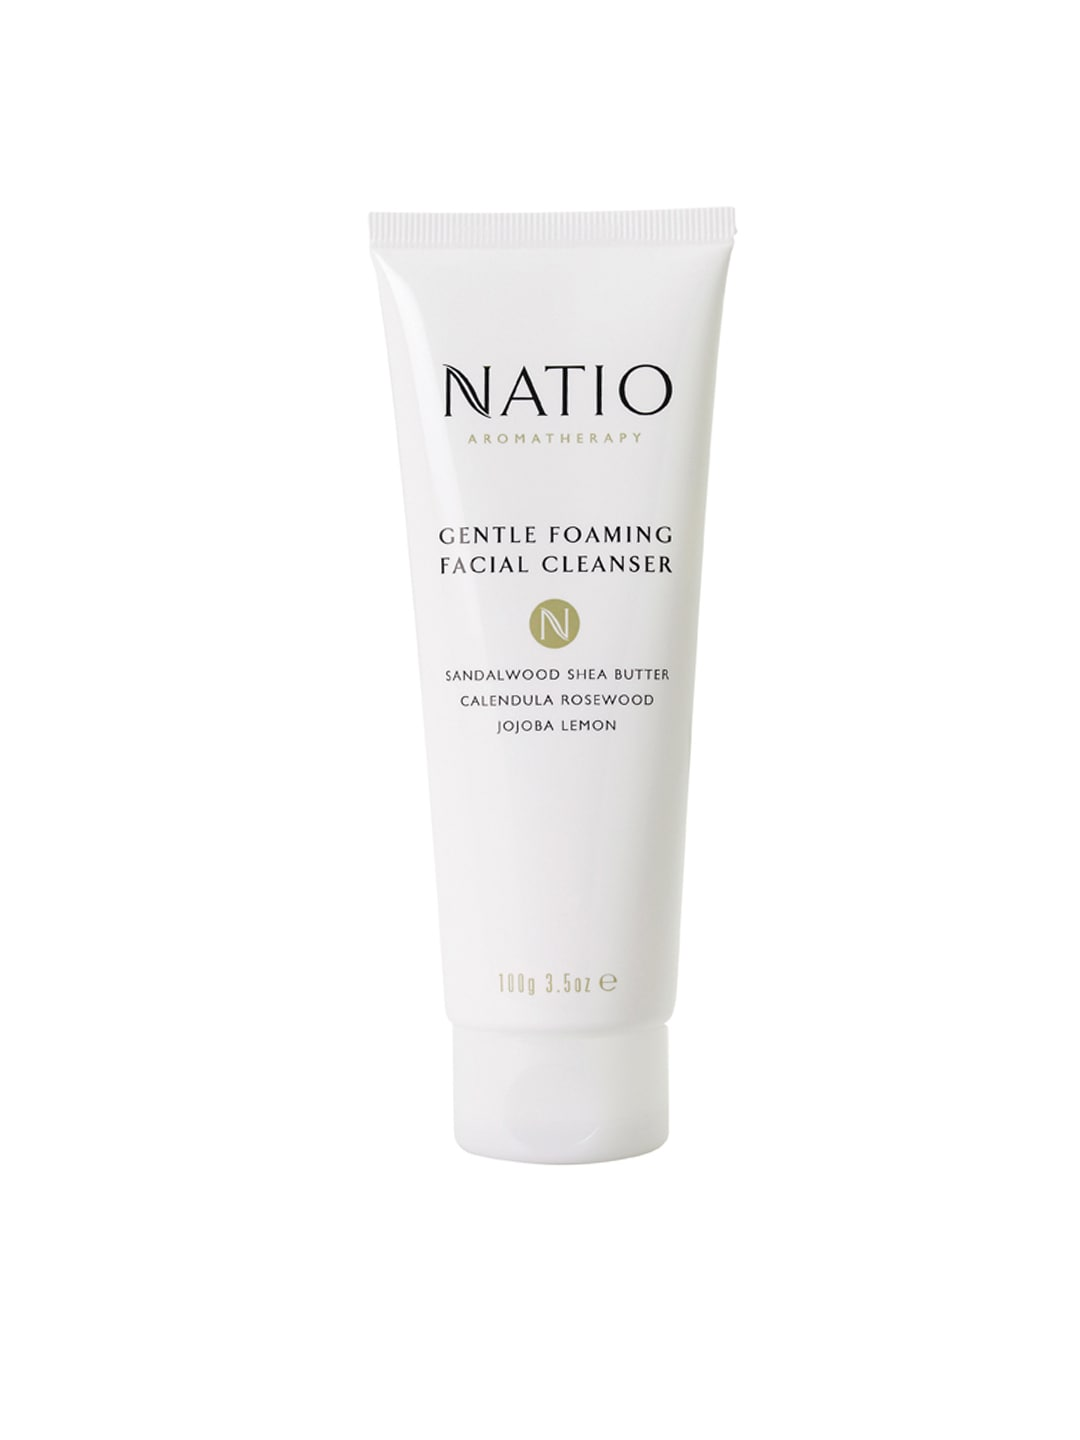 Natio Aromatherapy Gentle Foaming Facial Cleanser